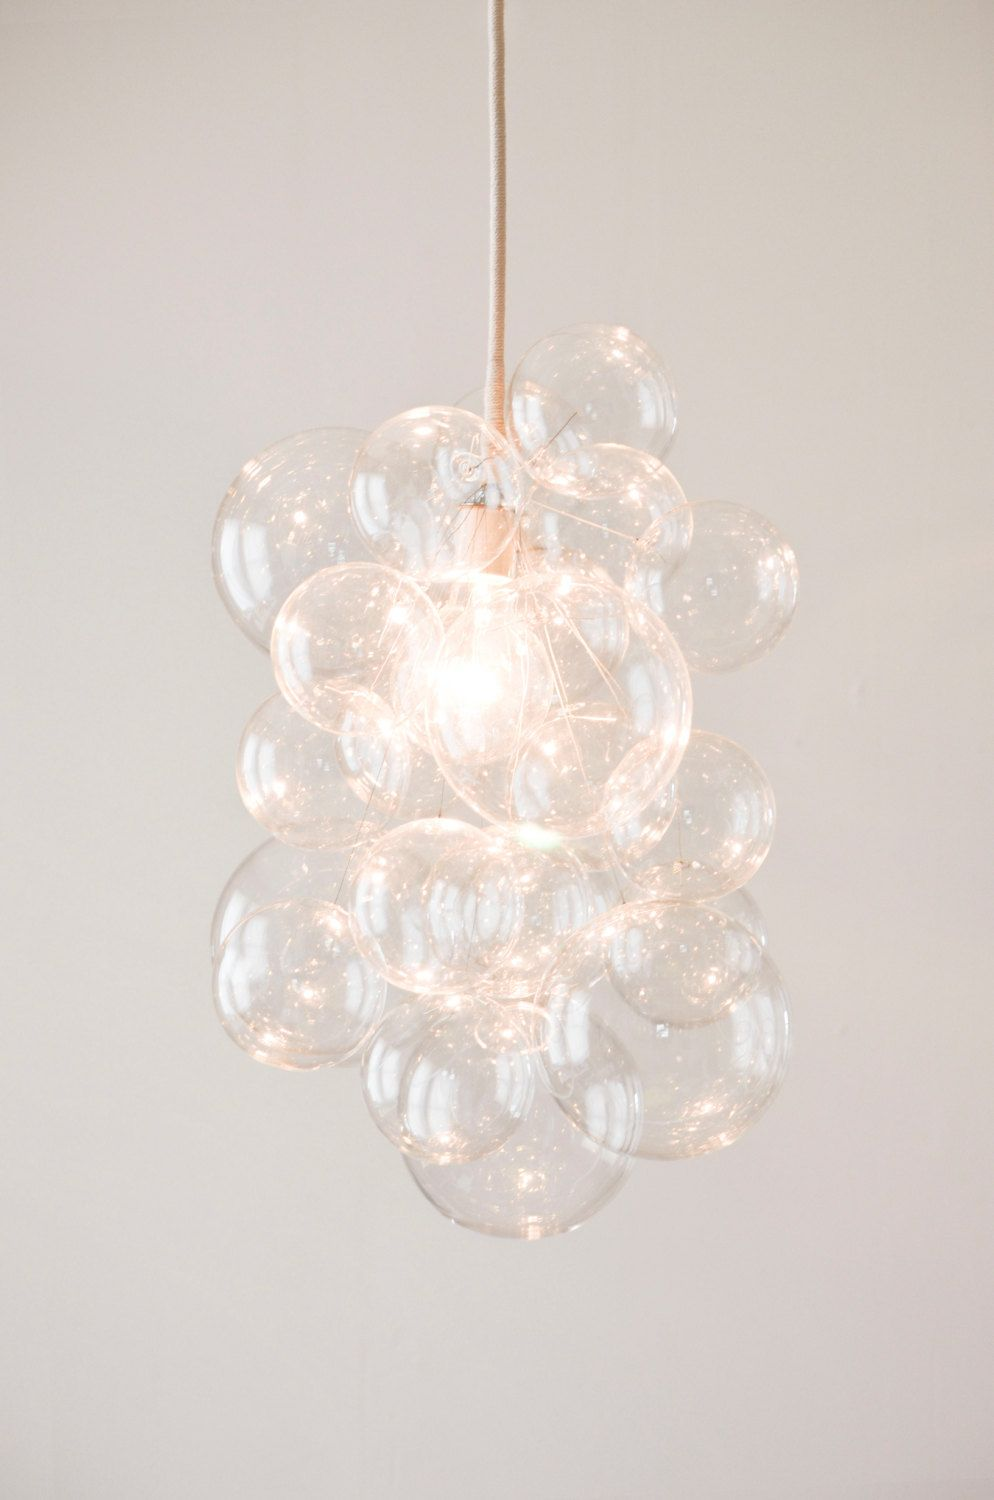 The Waterfall Pendant Glass Bubble Chandelier By Thelightfactory 500 00